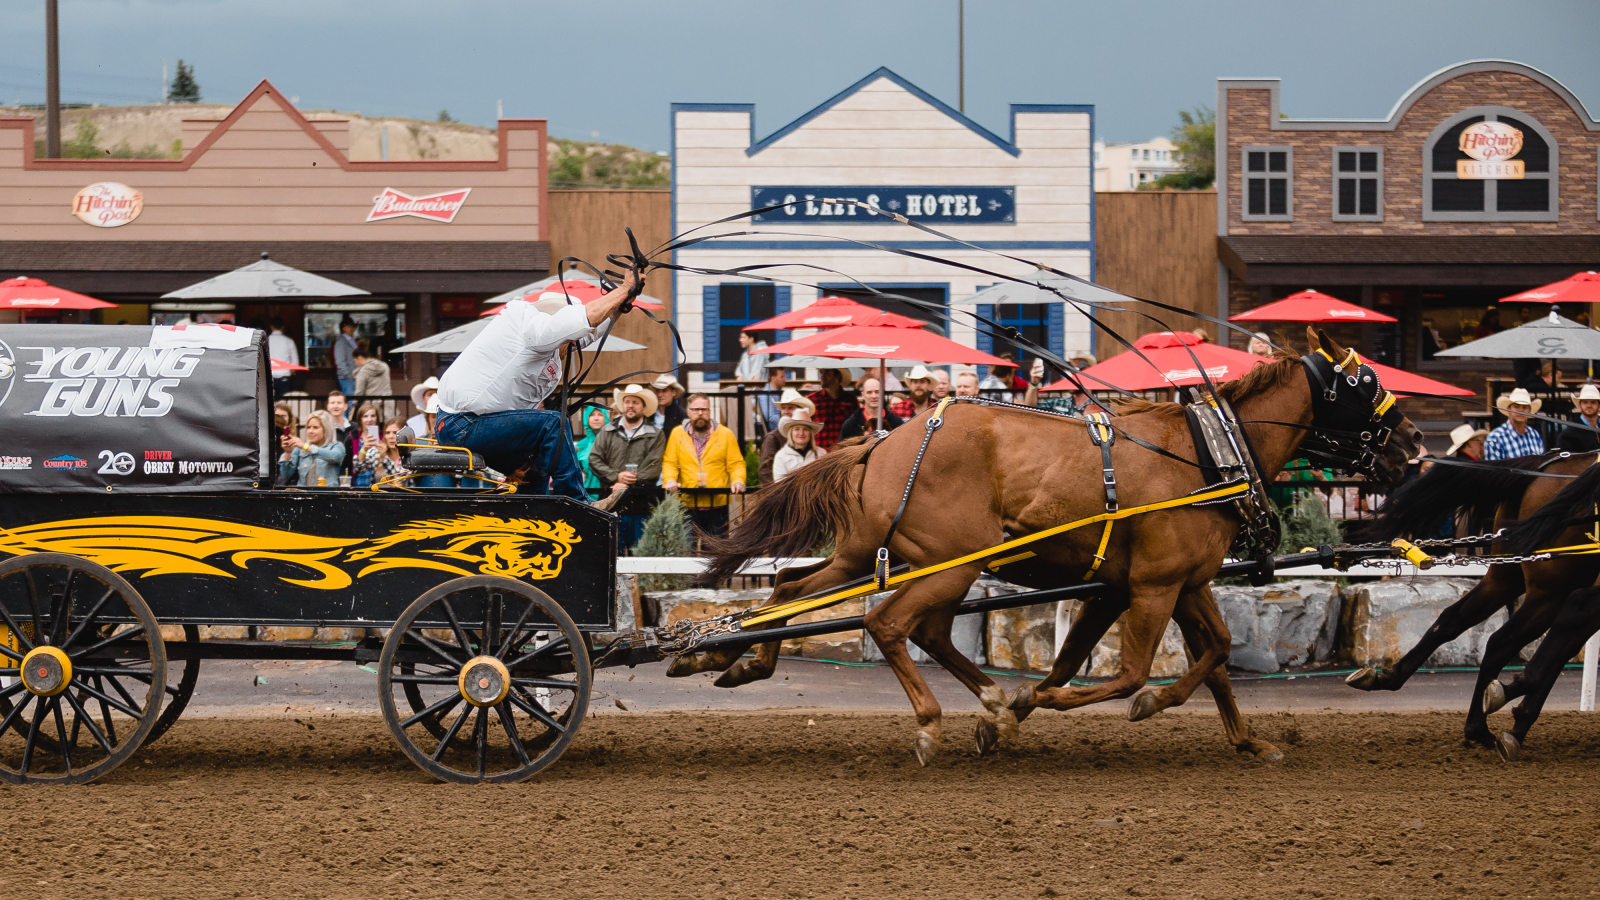 Every summer, there's a chance the Calgary Stampede's